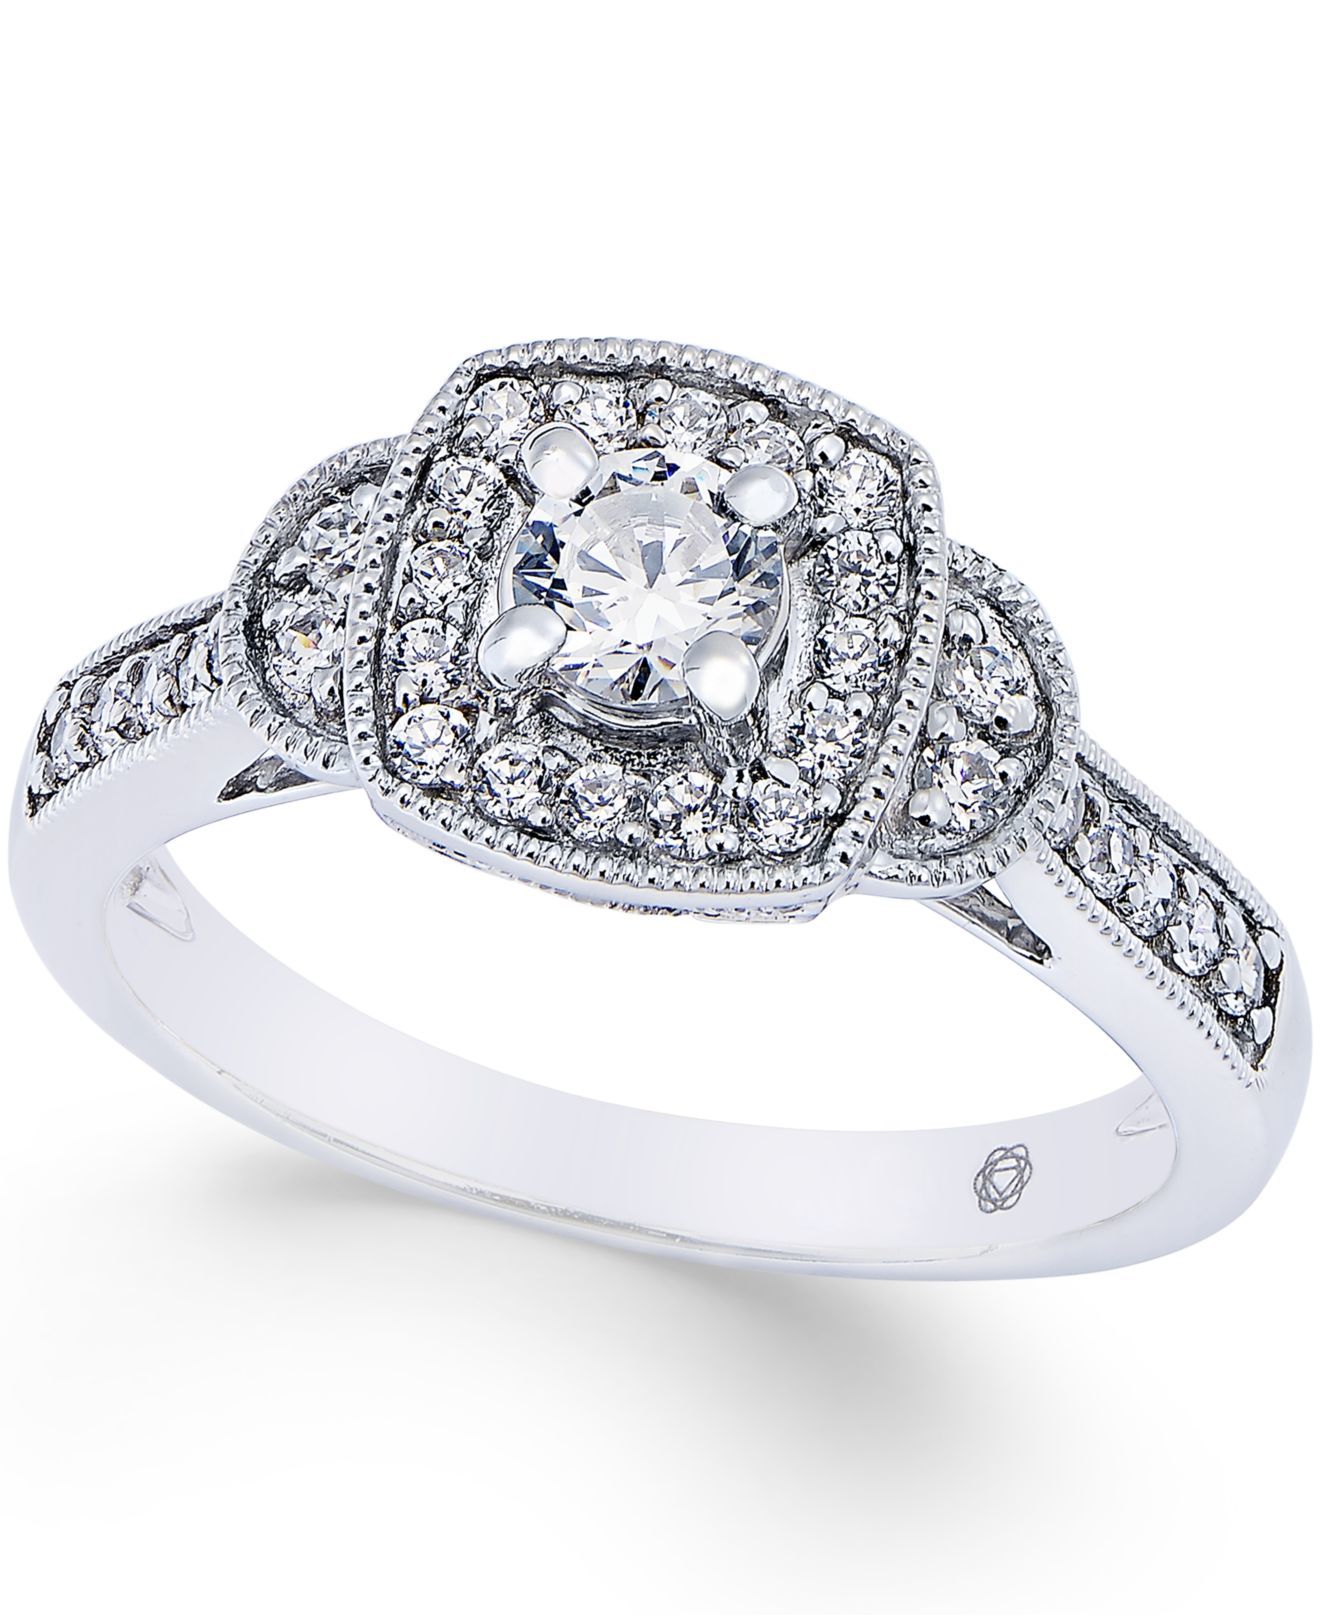 macy s engagement ring 1 2 ct t w in 14k white